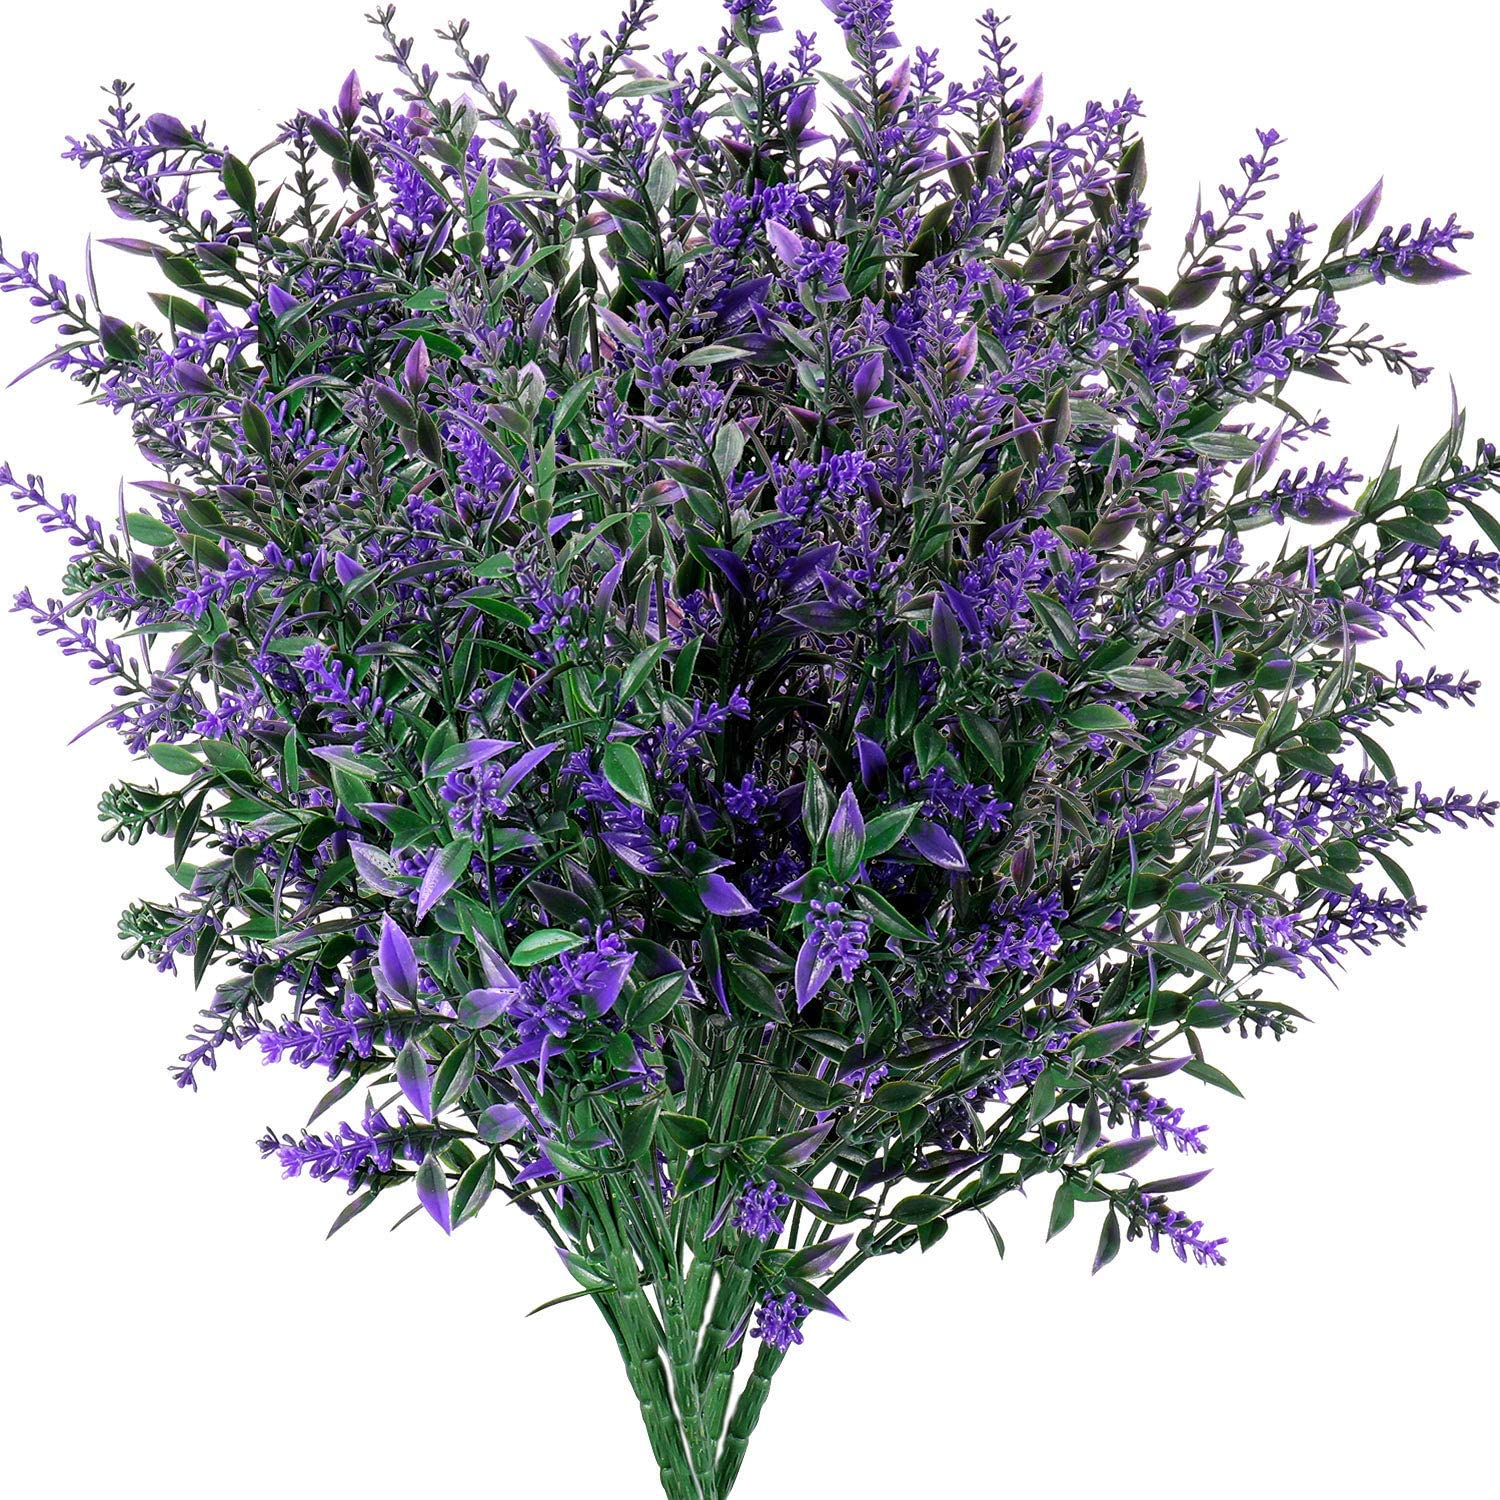 Artificial Plants Lavender Faux Breath UV Resistant Fake Shrubs Simulation Greenery Bushes House Office Garden Patio Indoor Outdoor Decor Wedding Table Flowers Arrangement Bouquet Filler - 6pcs